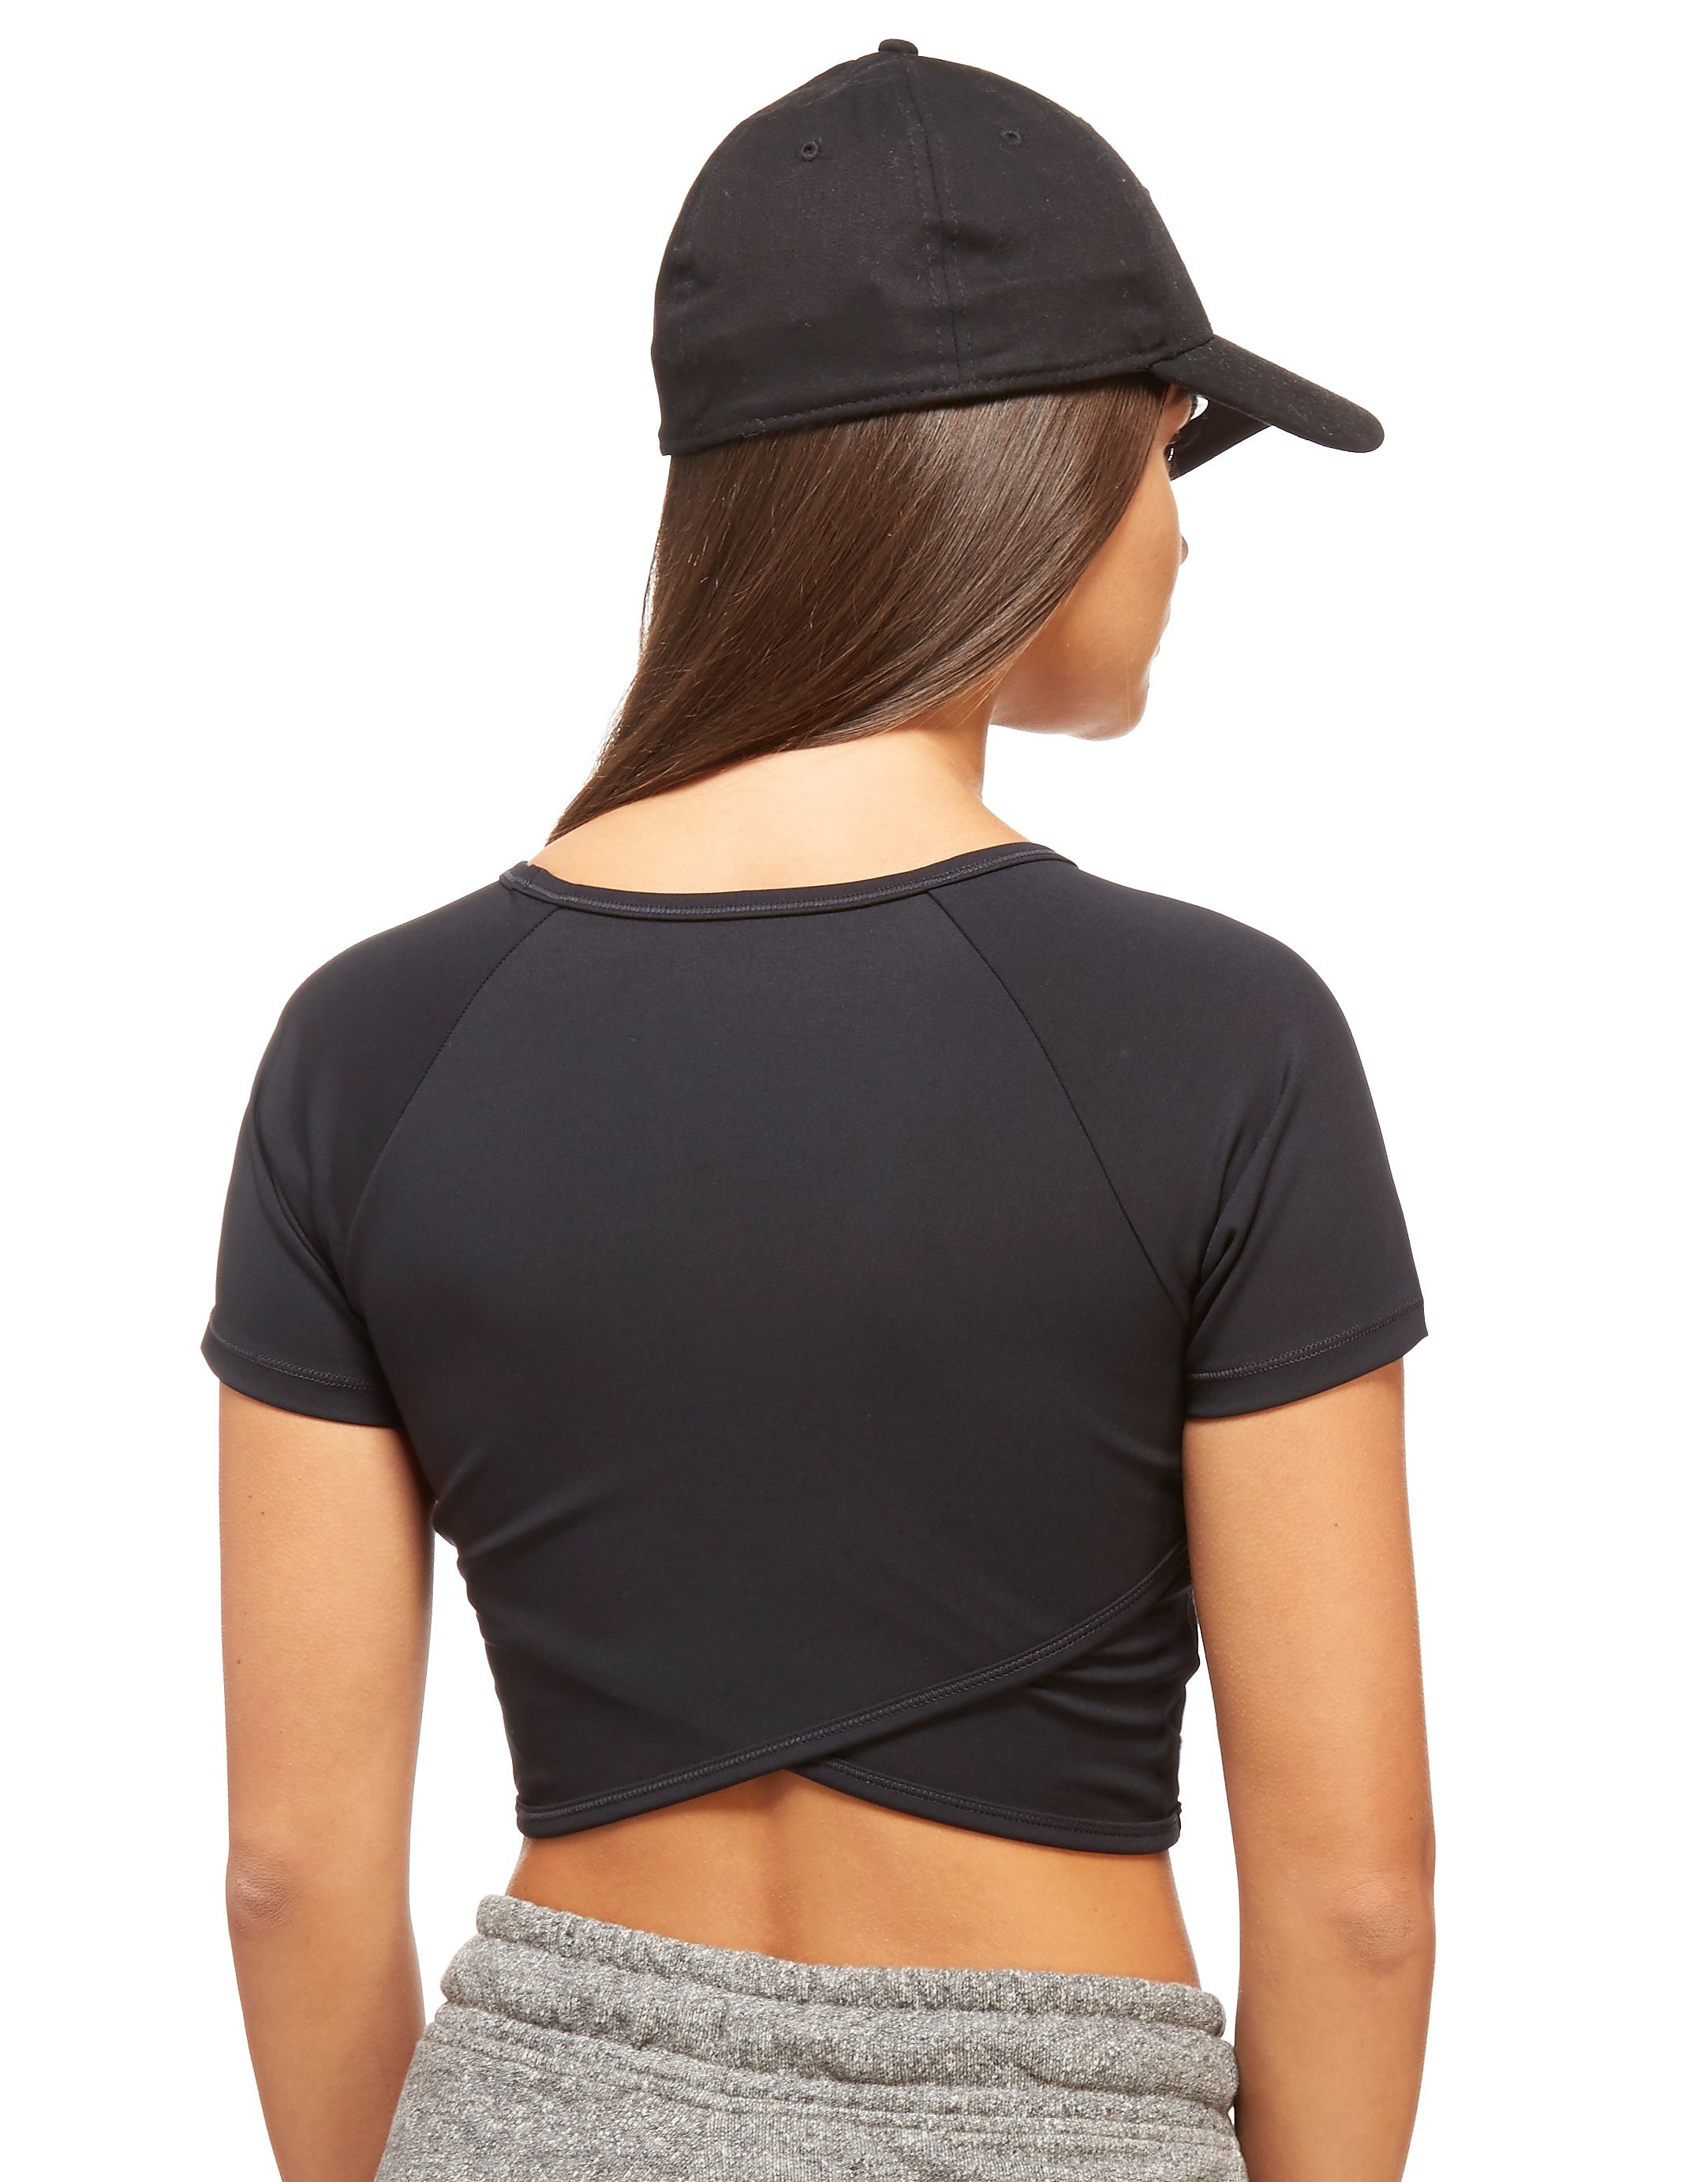 IVY PARK Wrap Back Crop Top